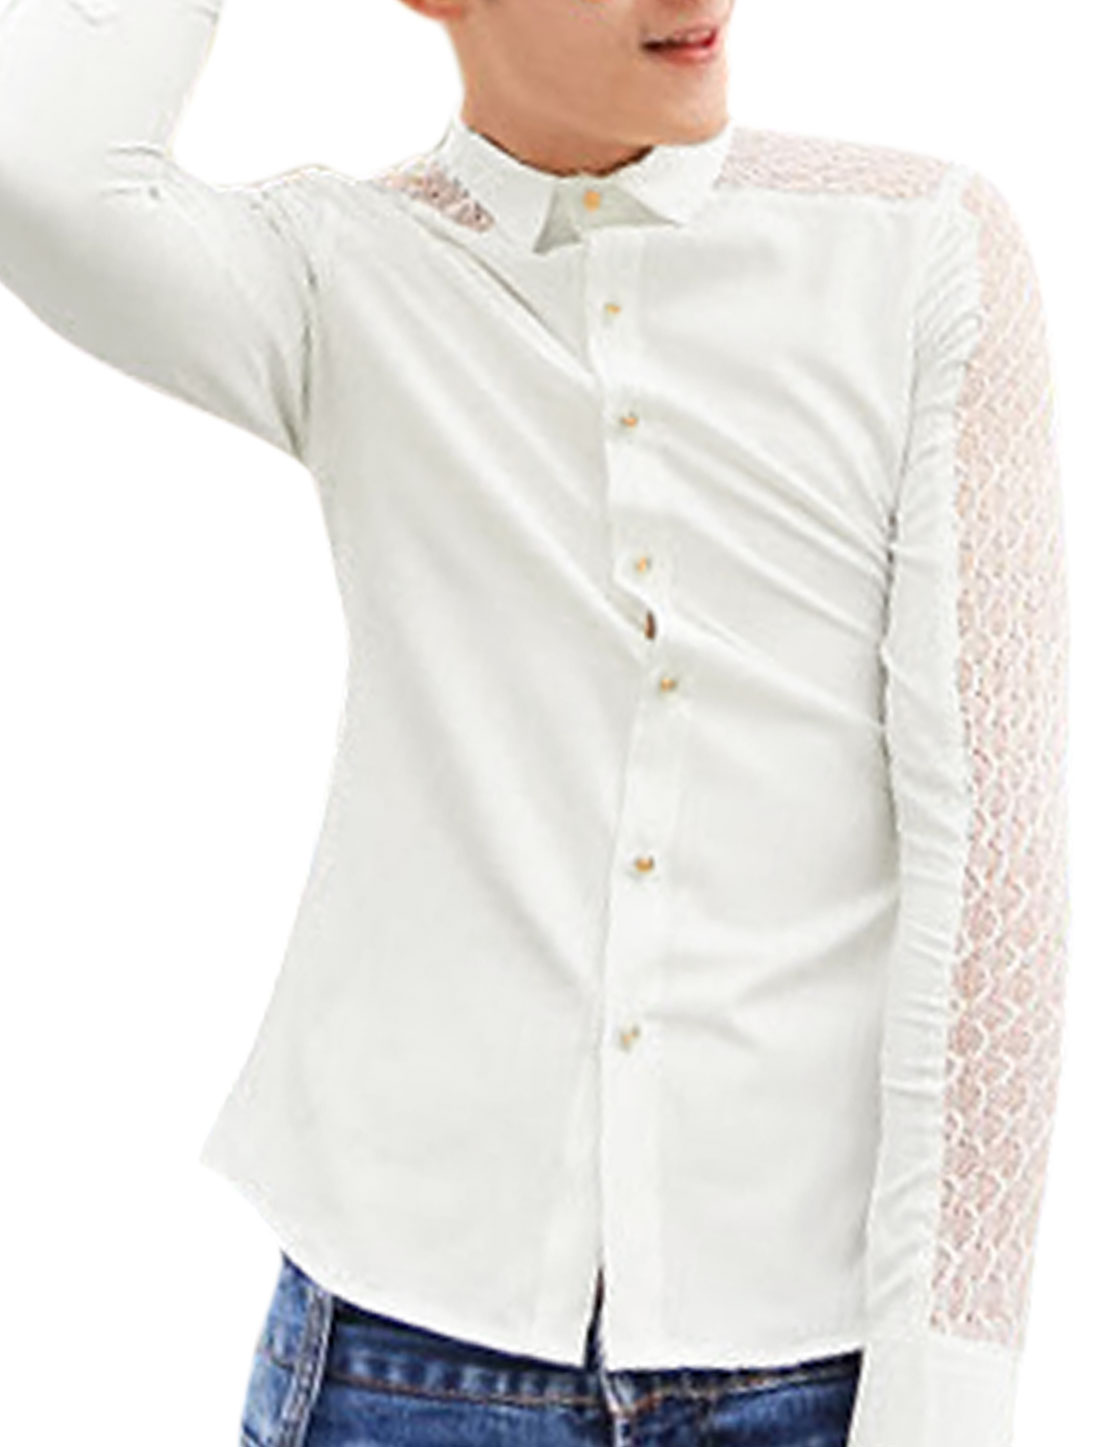 Men Point Collar Lace Panel Long Sleeves Casual Shirt White S